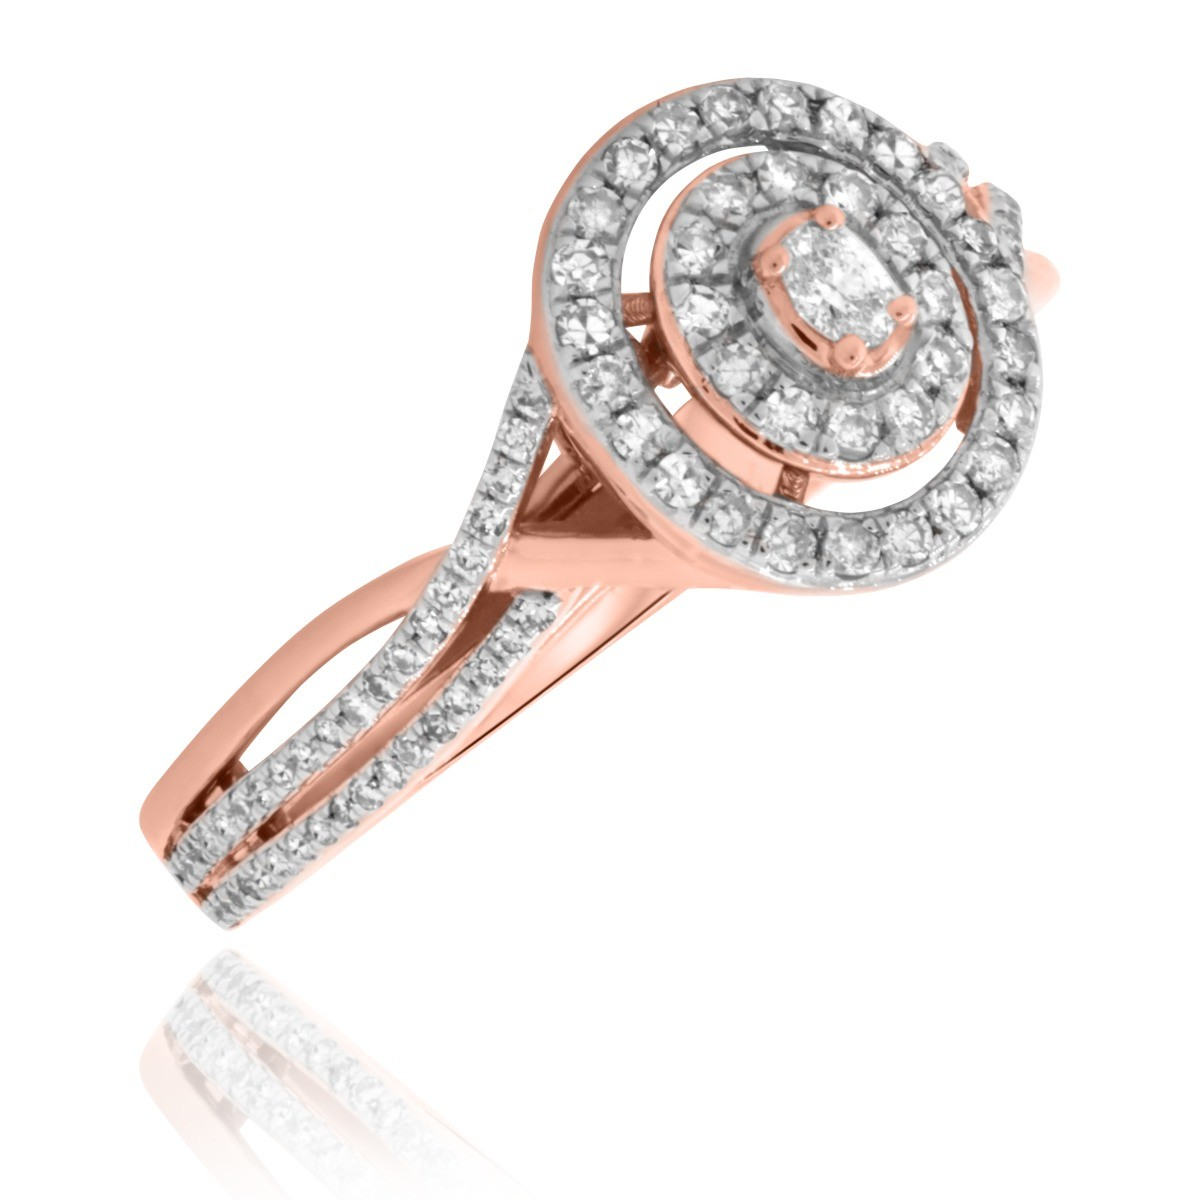 1/2 CT. T.W. Diamond Engagement Ring 14K Rose Gold